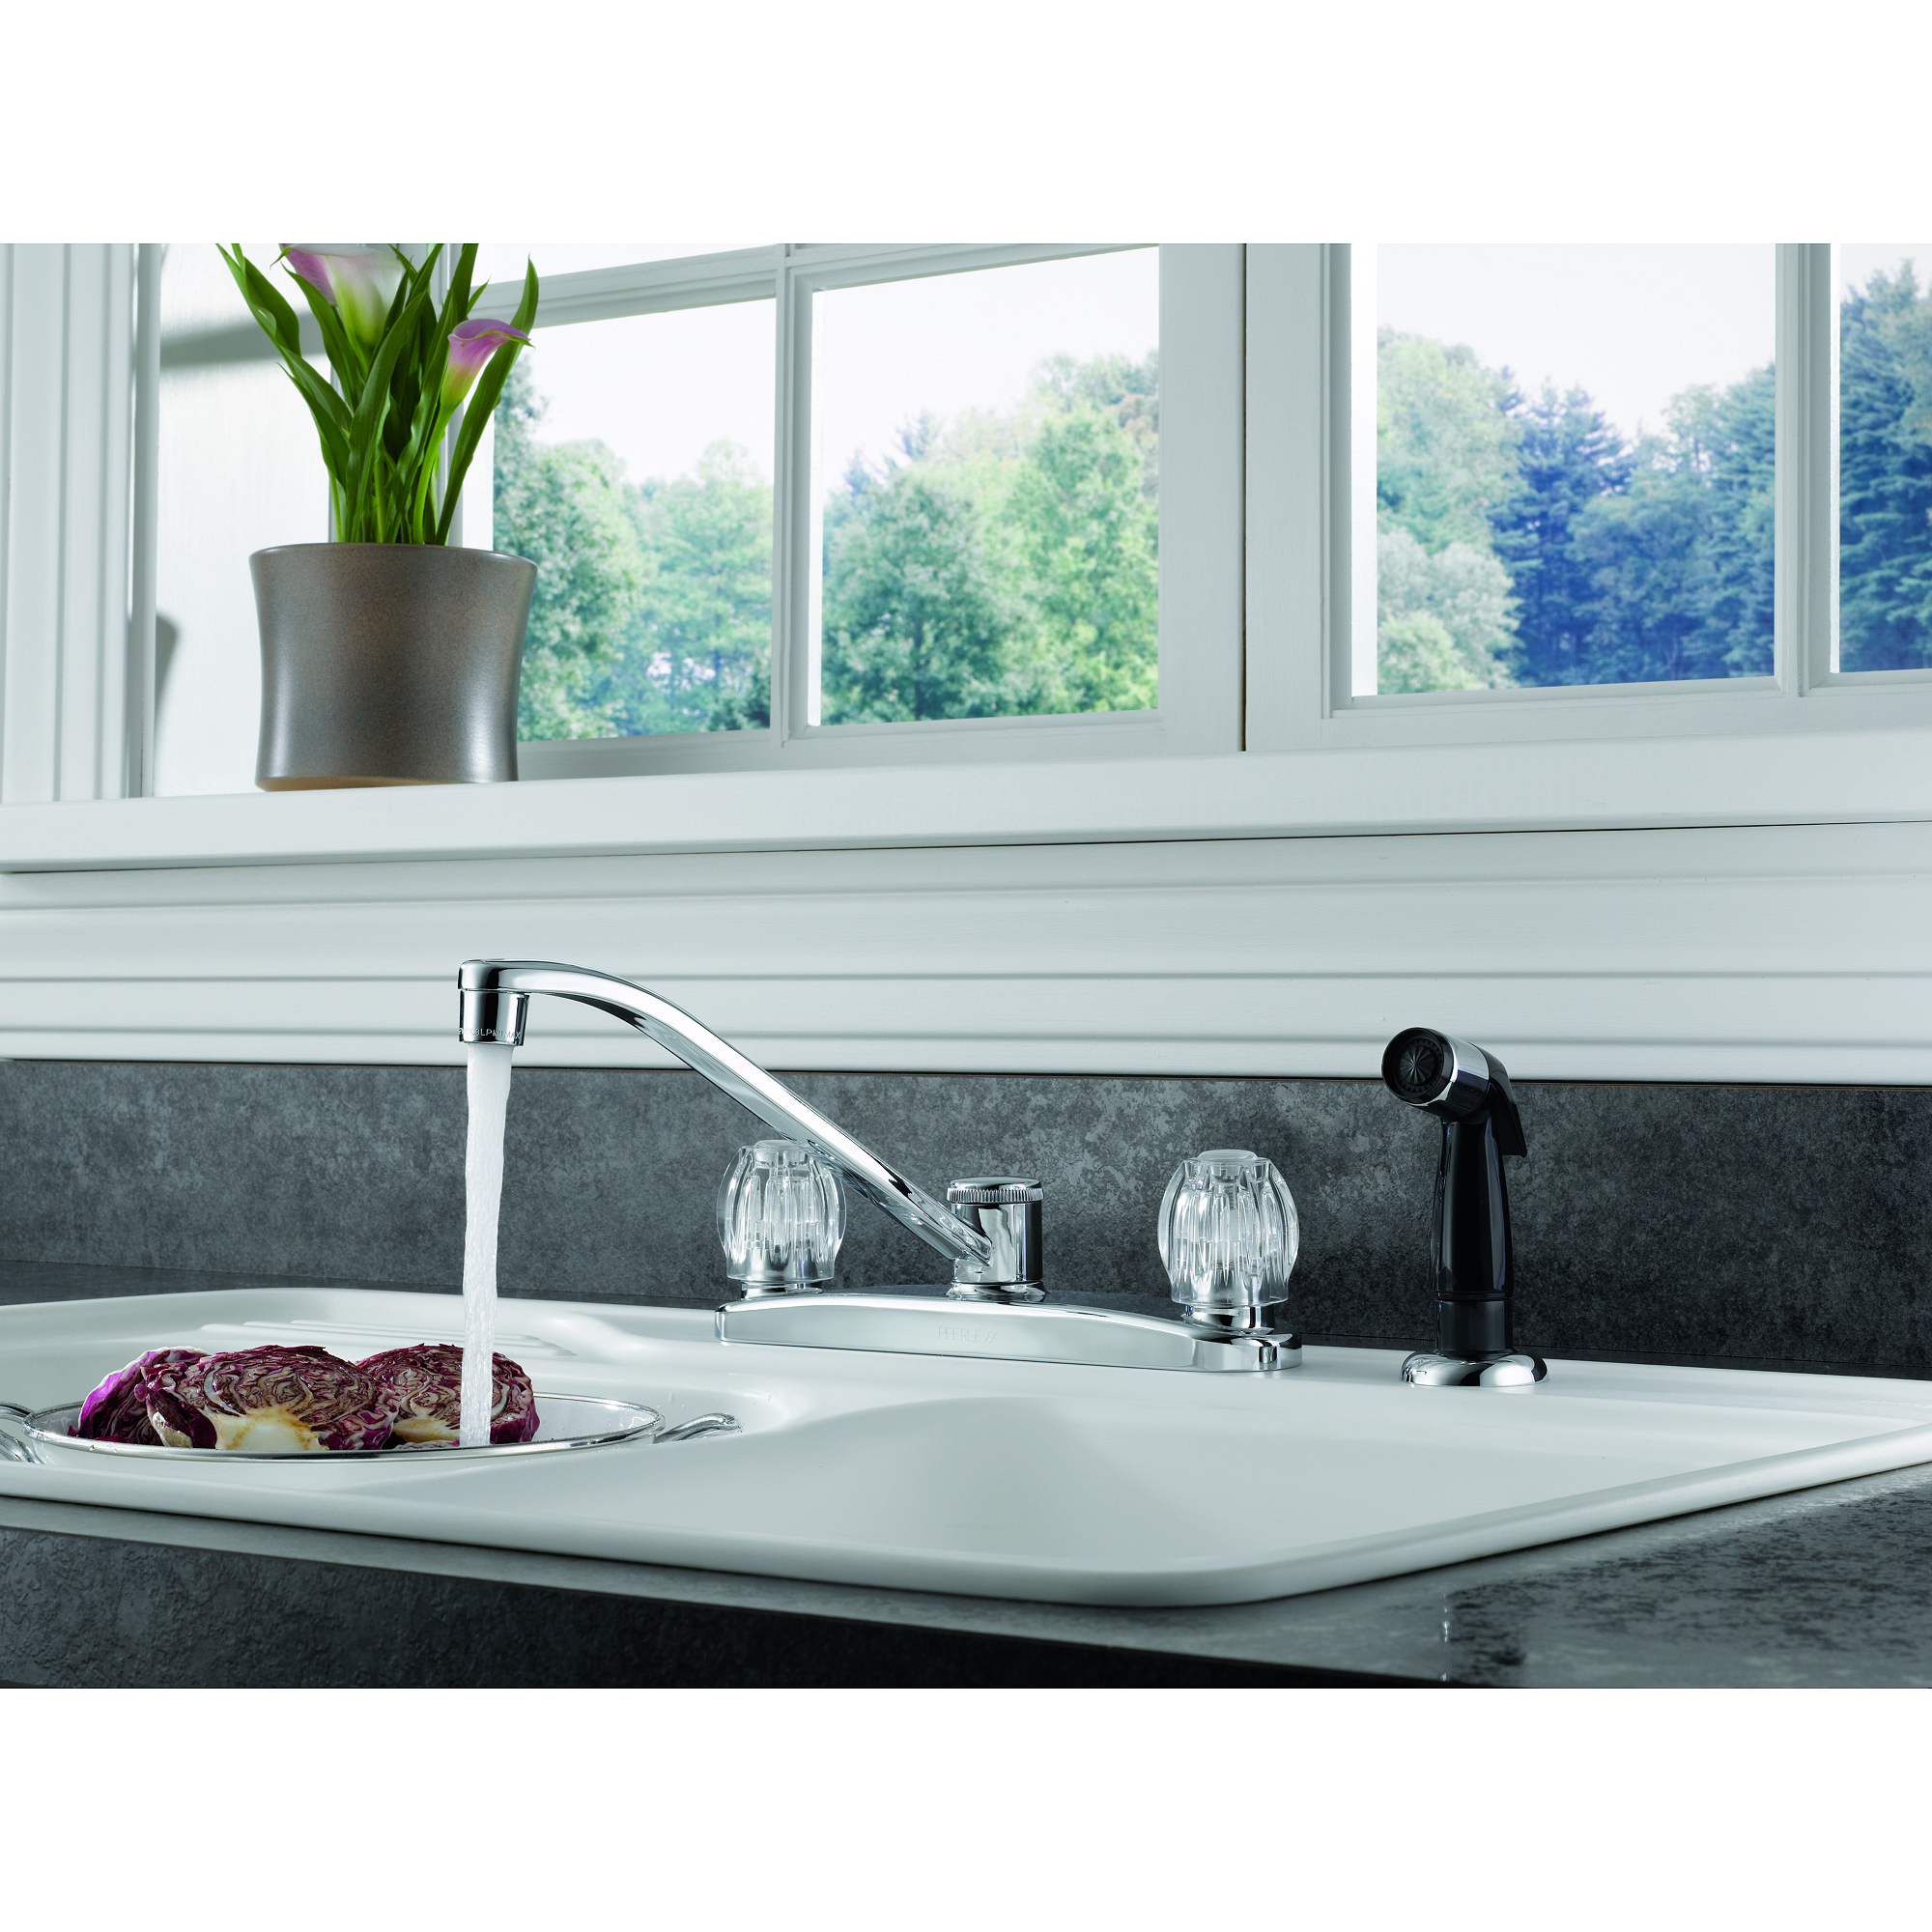 size hole kitchen faucet sink lowes sinks with bathroom full faucets vanity dispenser of depot menards vessel soap at combo and surprising home sets walmart cheap